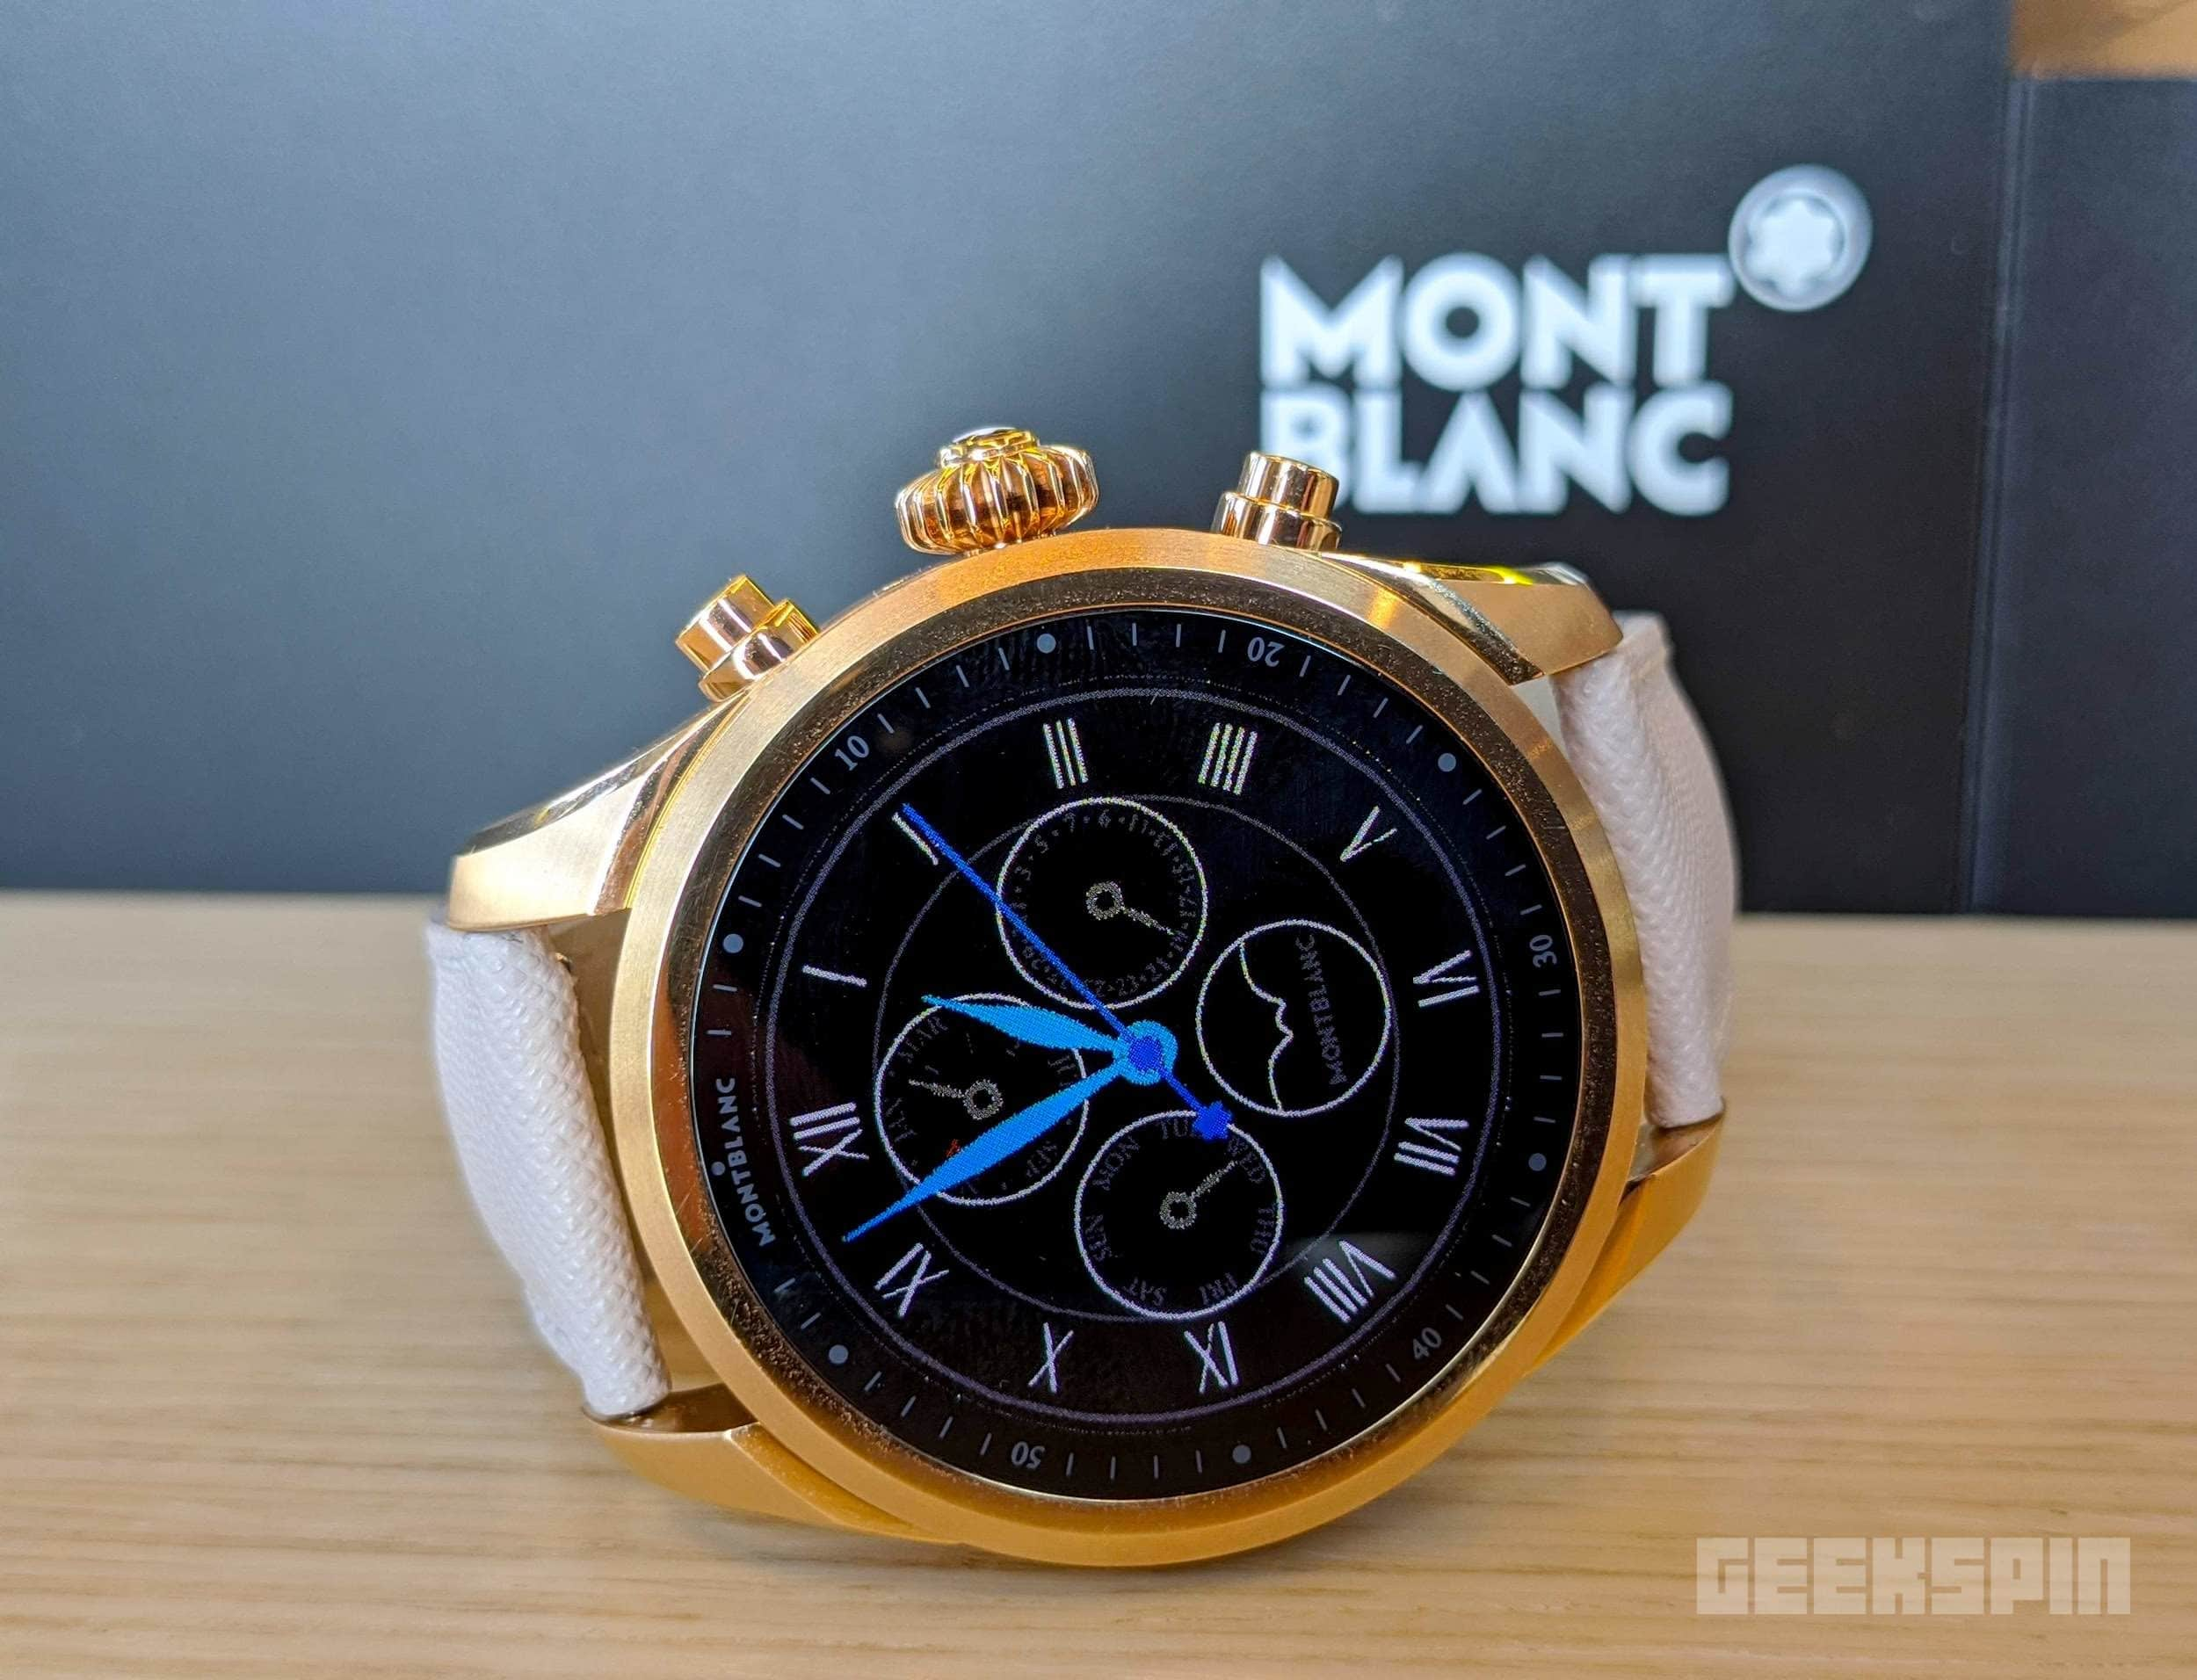 Montblanc's Summit 2+ is the first Wear OS smartwatch with LTE 15